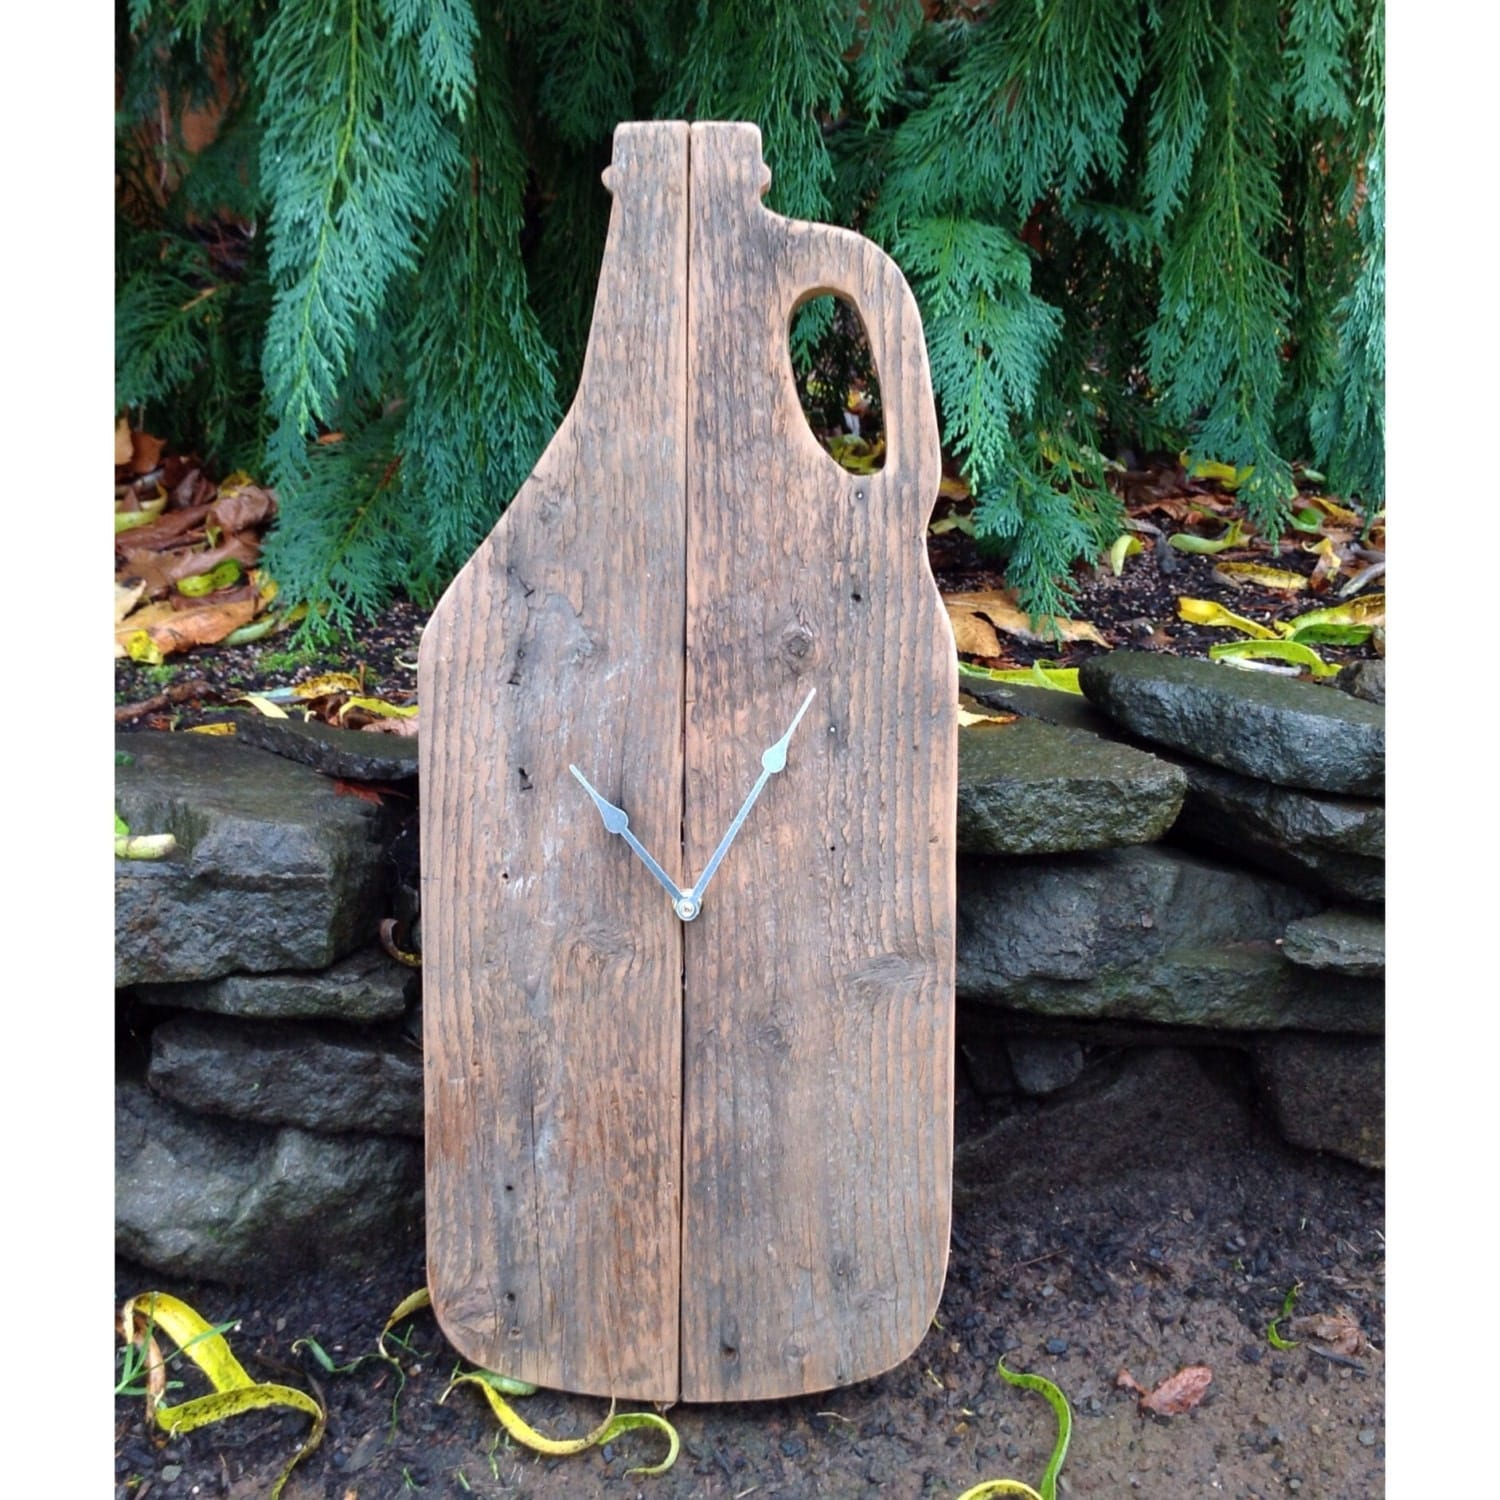 Beer growler beer sign wooden wall clock rustic clock man zoom amipublicfo Image collections